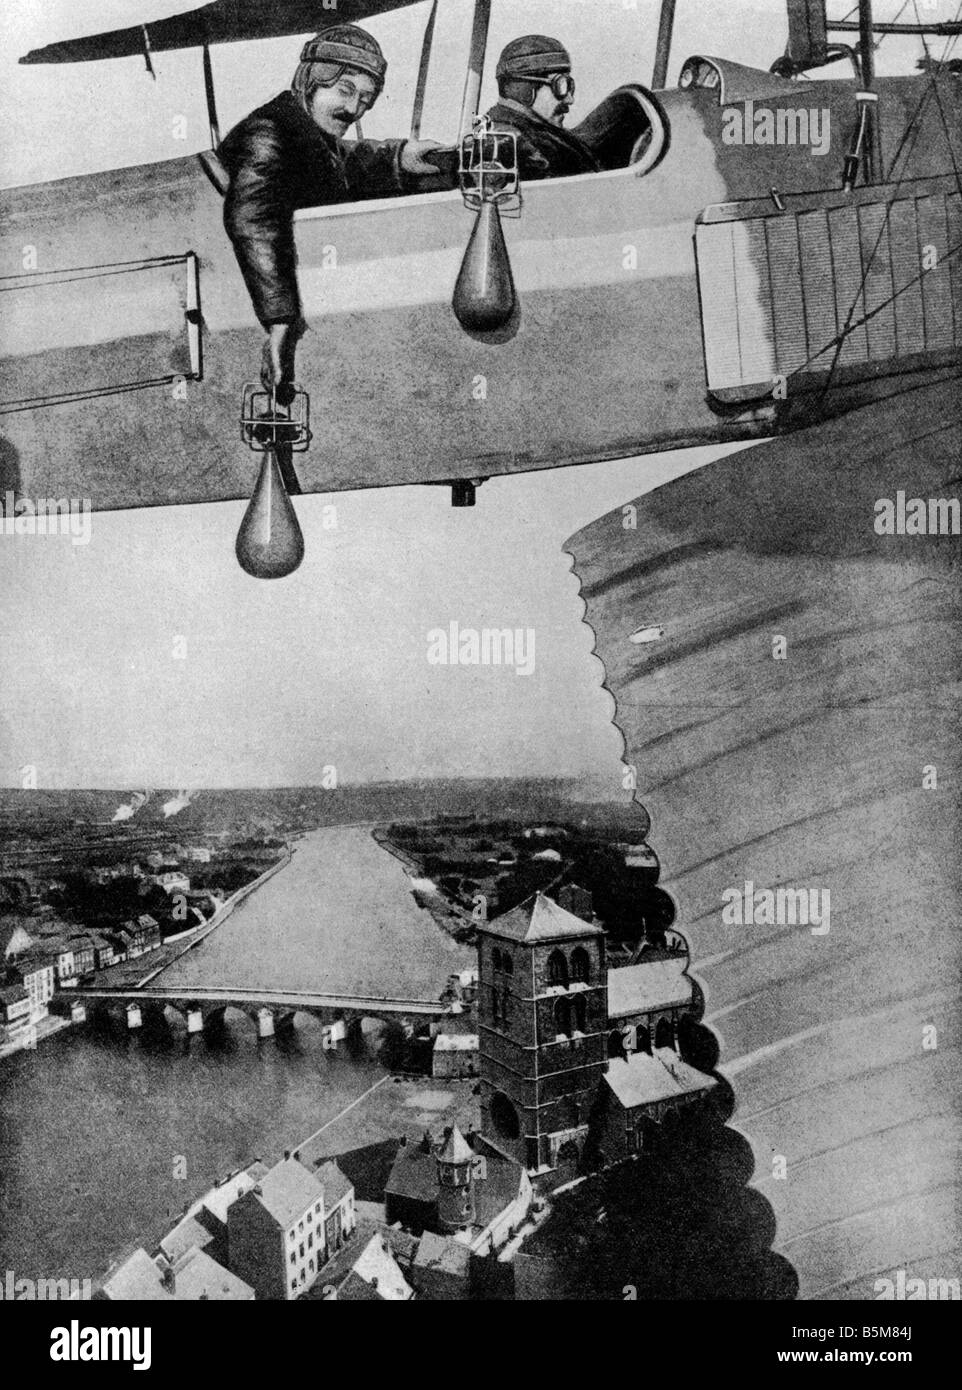 2 G55 B1 1914 3 Airmen dropping bombs Montage WWI History World War I Aerial warfare Airmen dropping bombs Montage - Stock Image